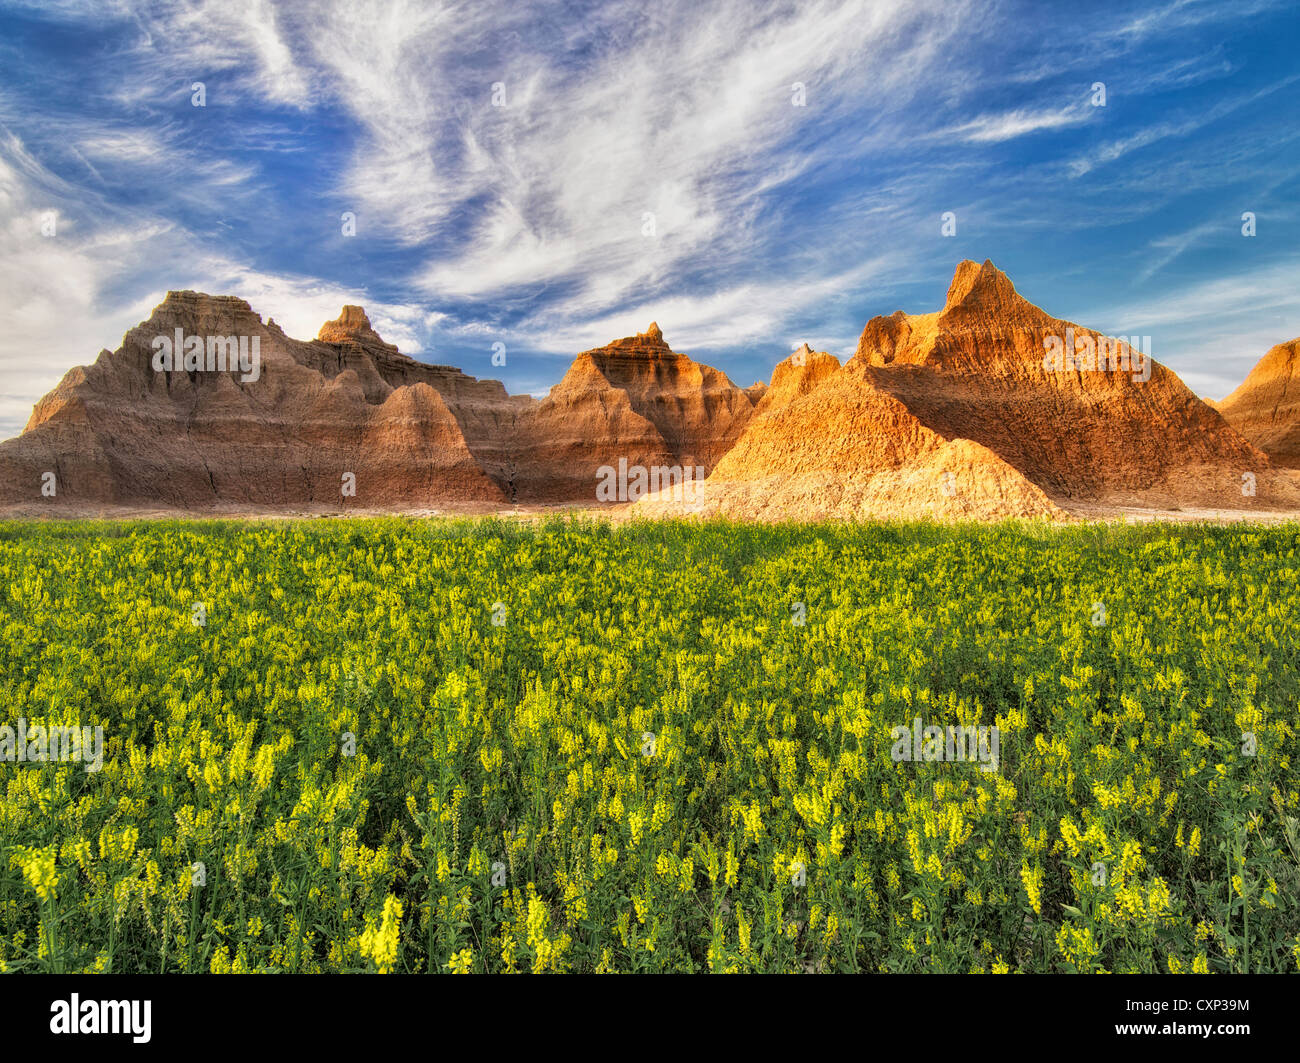 Gelber Steinklee und Felsformationen. Badlands Nationalpark, South Dakota. Stockbild